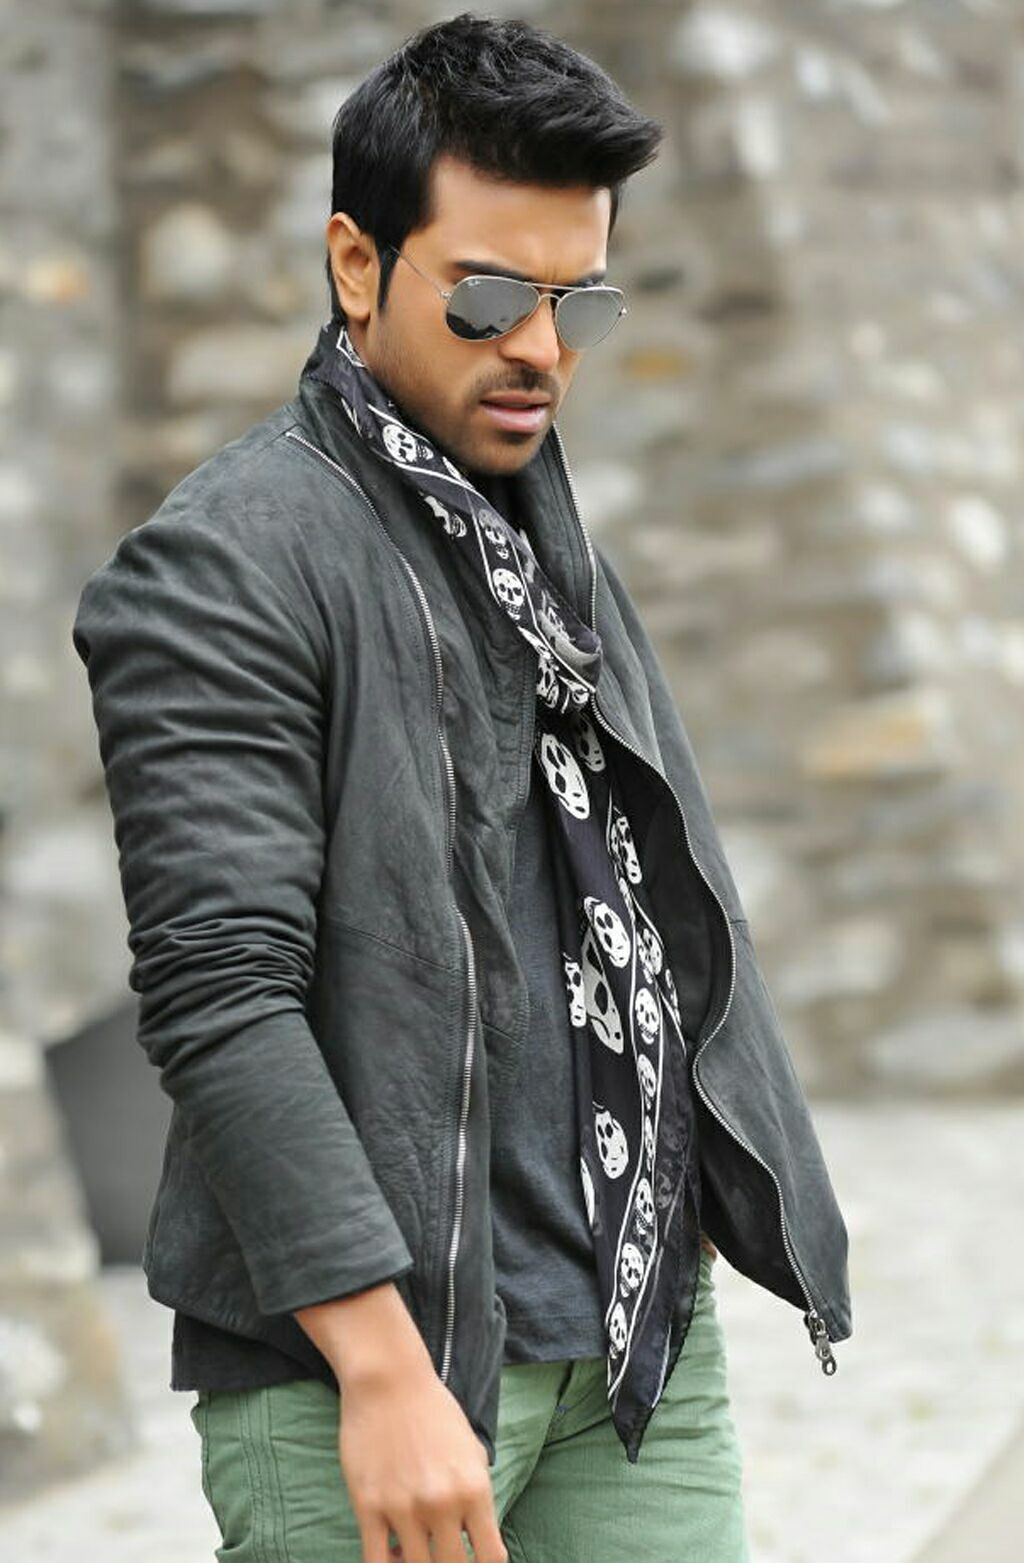 1080p hd wallpapers of ramcharan teja from yevadu movie | images